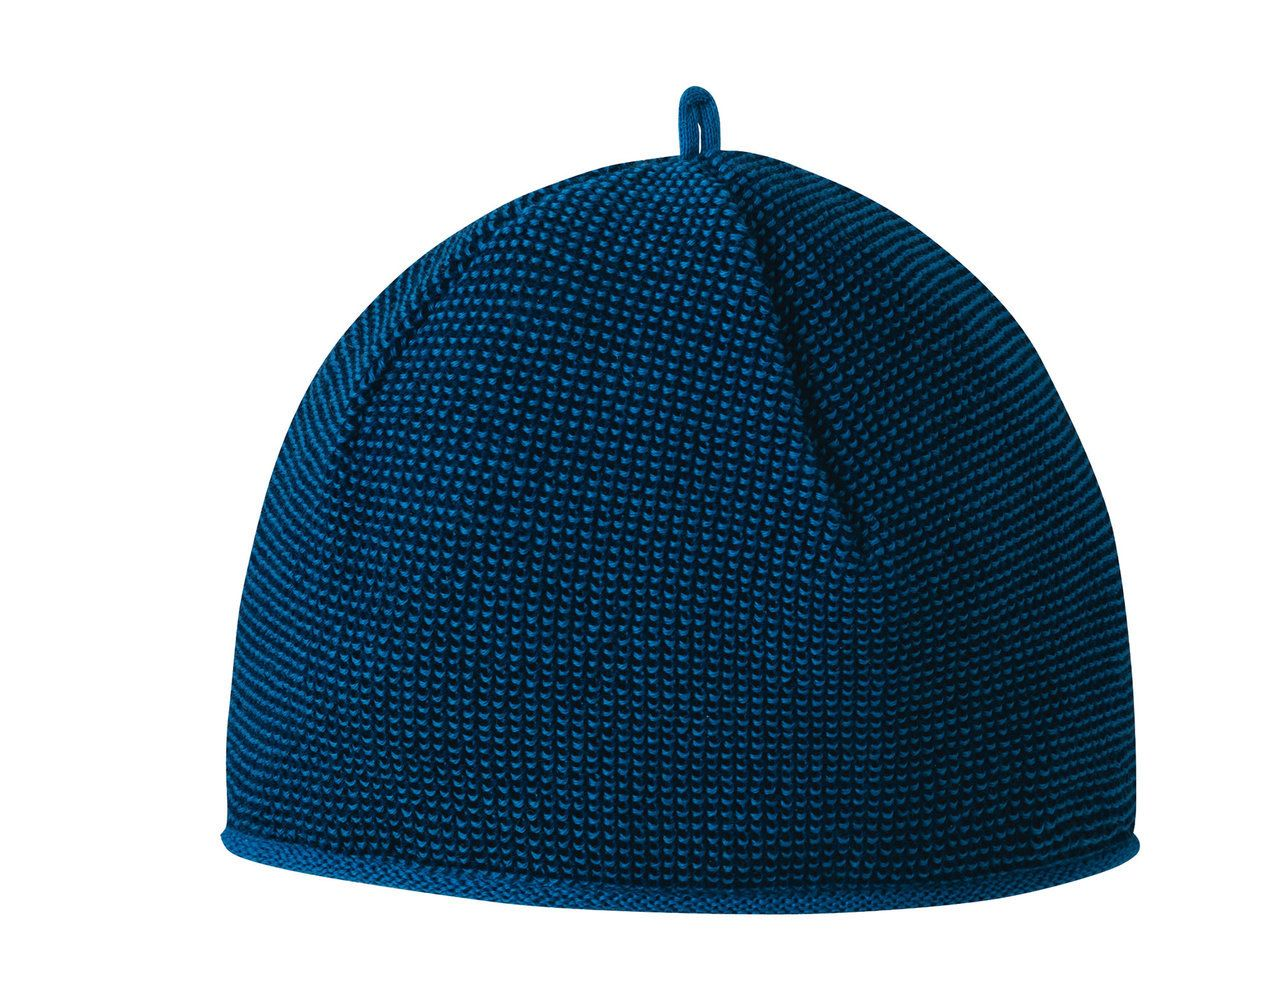 df1a5f6cdf7 Organically Baby - Organic Wool Mélange Hat in Blue from Disana - Made in  Germany